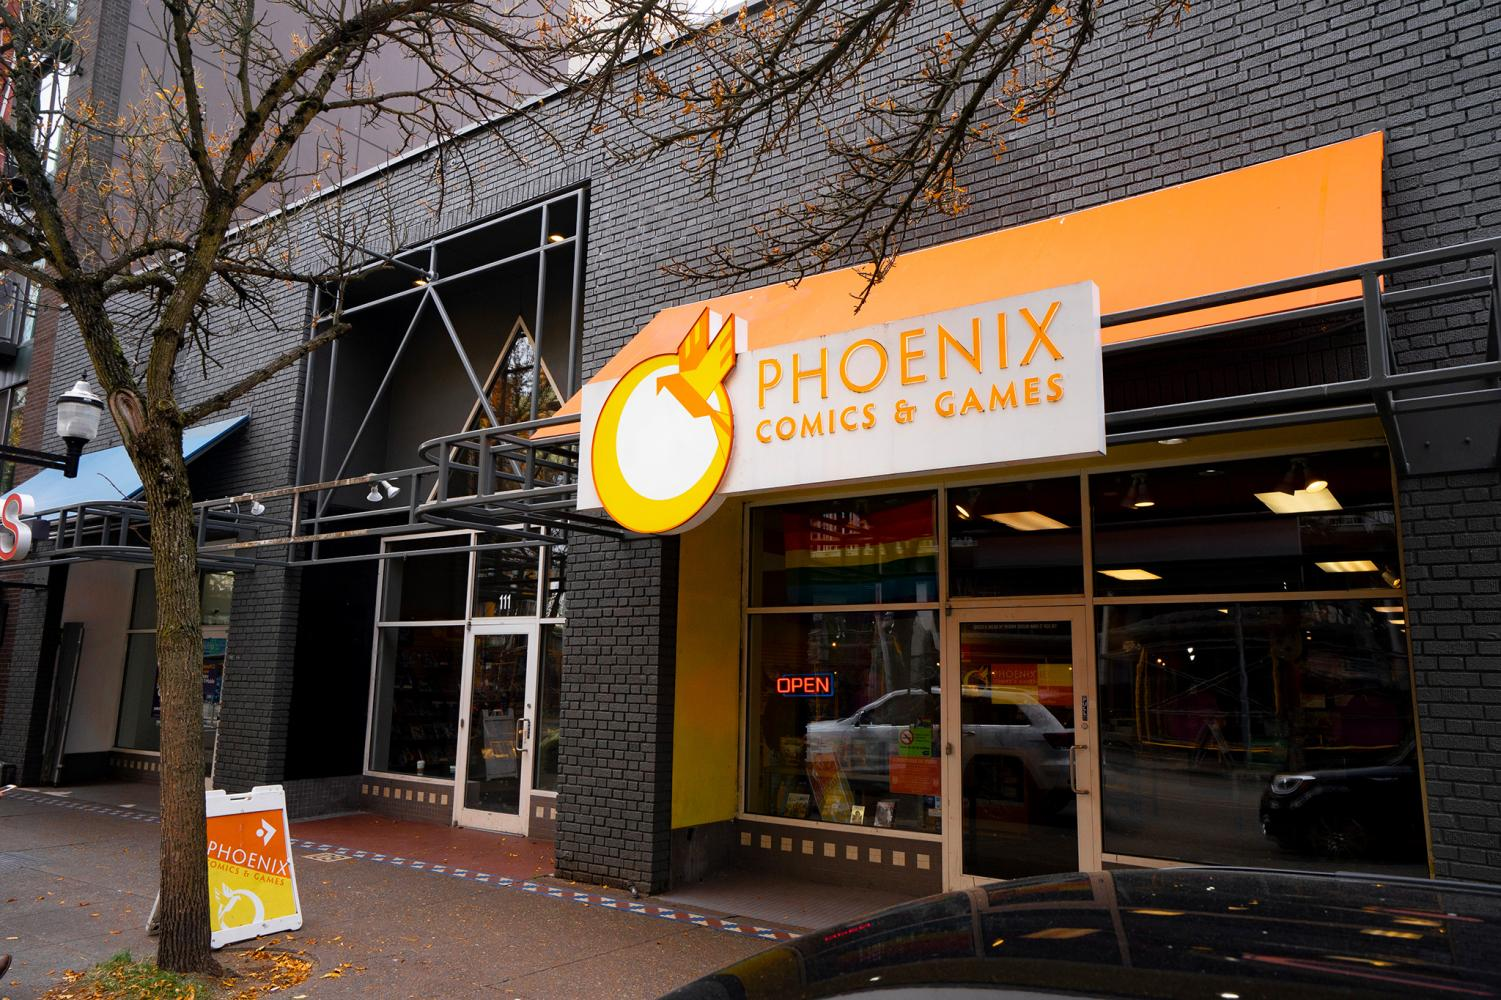 The exterior of the newly-expanded Phoenix Comics & Games.